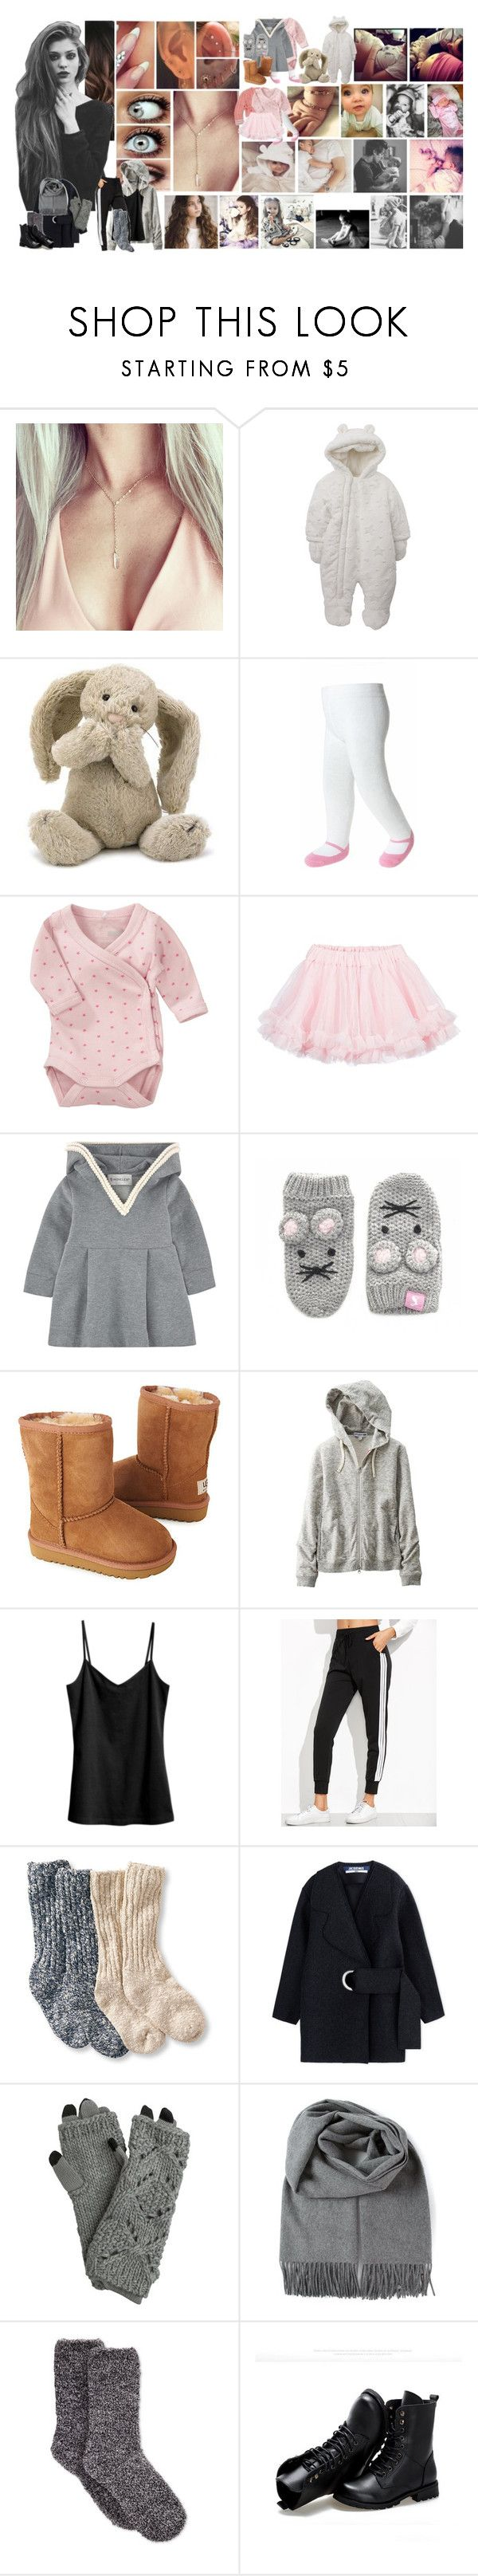 """""""Untitled #772"""" by lykke-boiskov-hansen ❤ liked on Polyvore featuring Jellycat, Ralph Lauren, Name It, LILI GAUFRETTE, Moncler, Joules, UGG Australia, Uniqlo, H&M and L.L.Bean"""